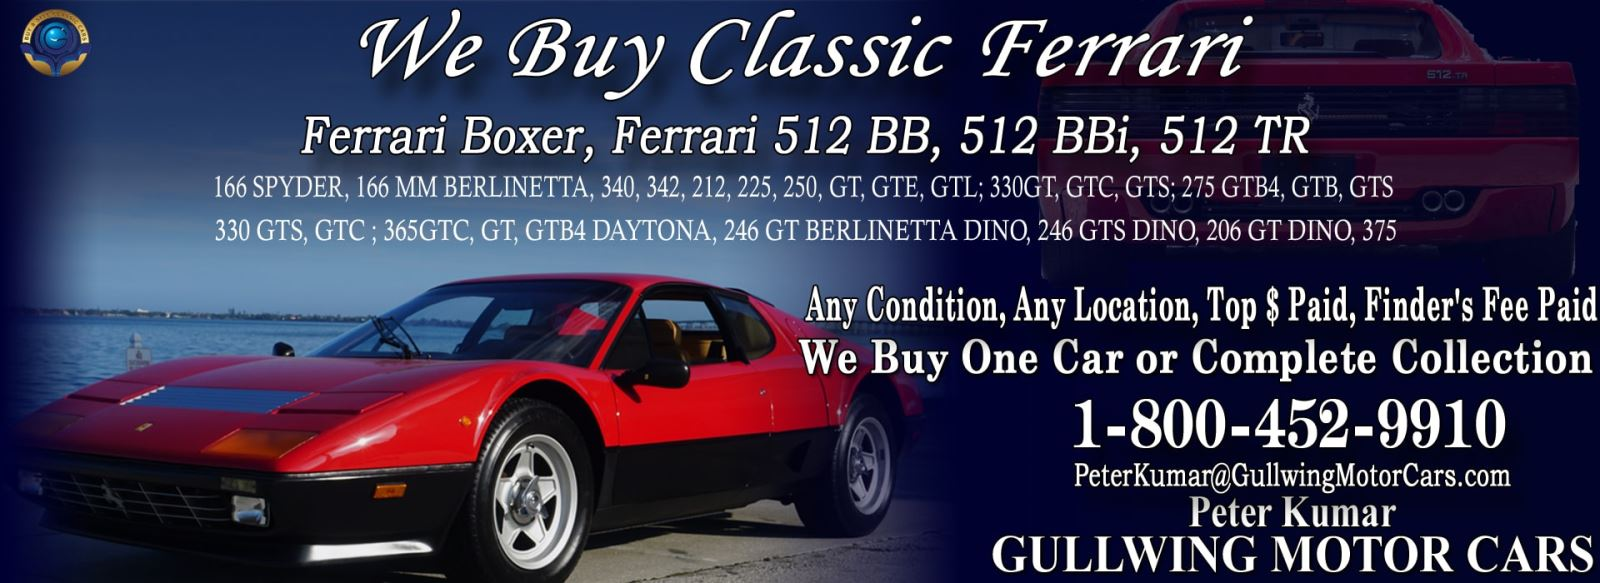 Classic Ferrari 512 BBi for sale, we buy vintage Ferrari 512BBi. Call Peter Kumar. Gullwing Motor